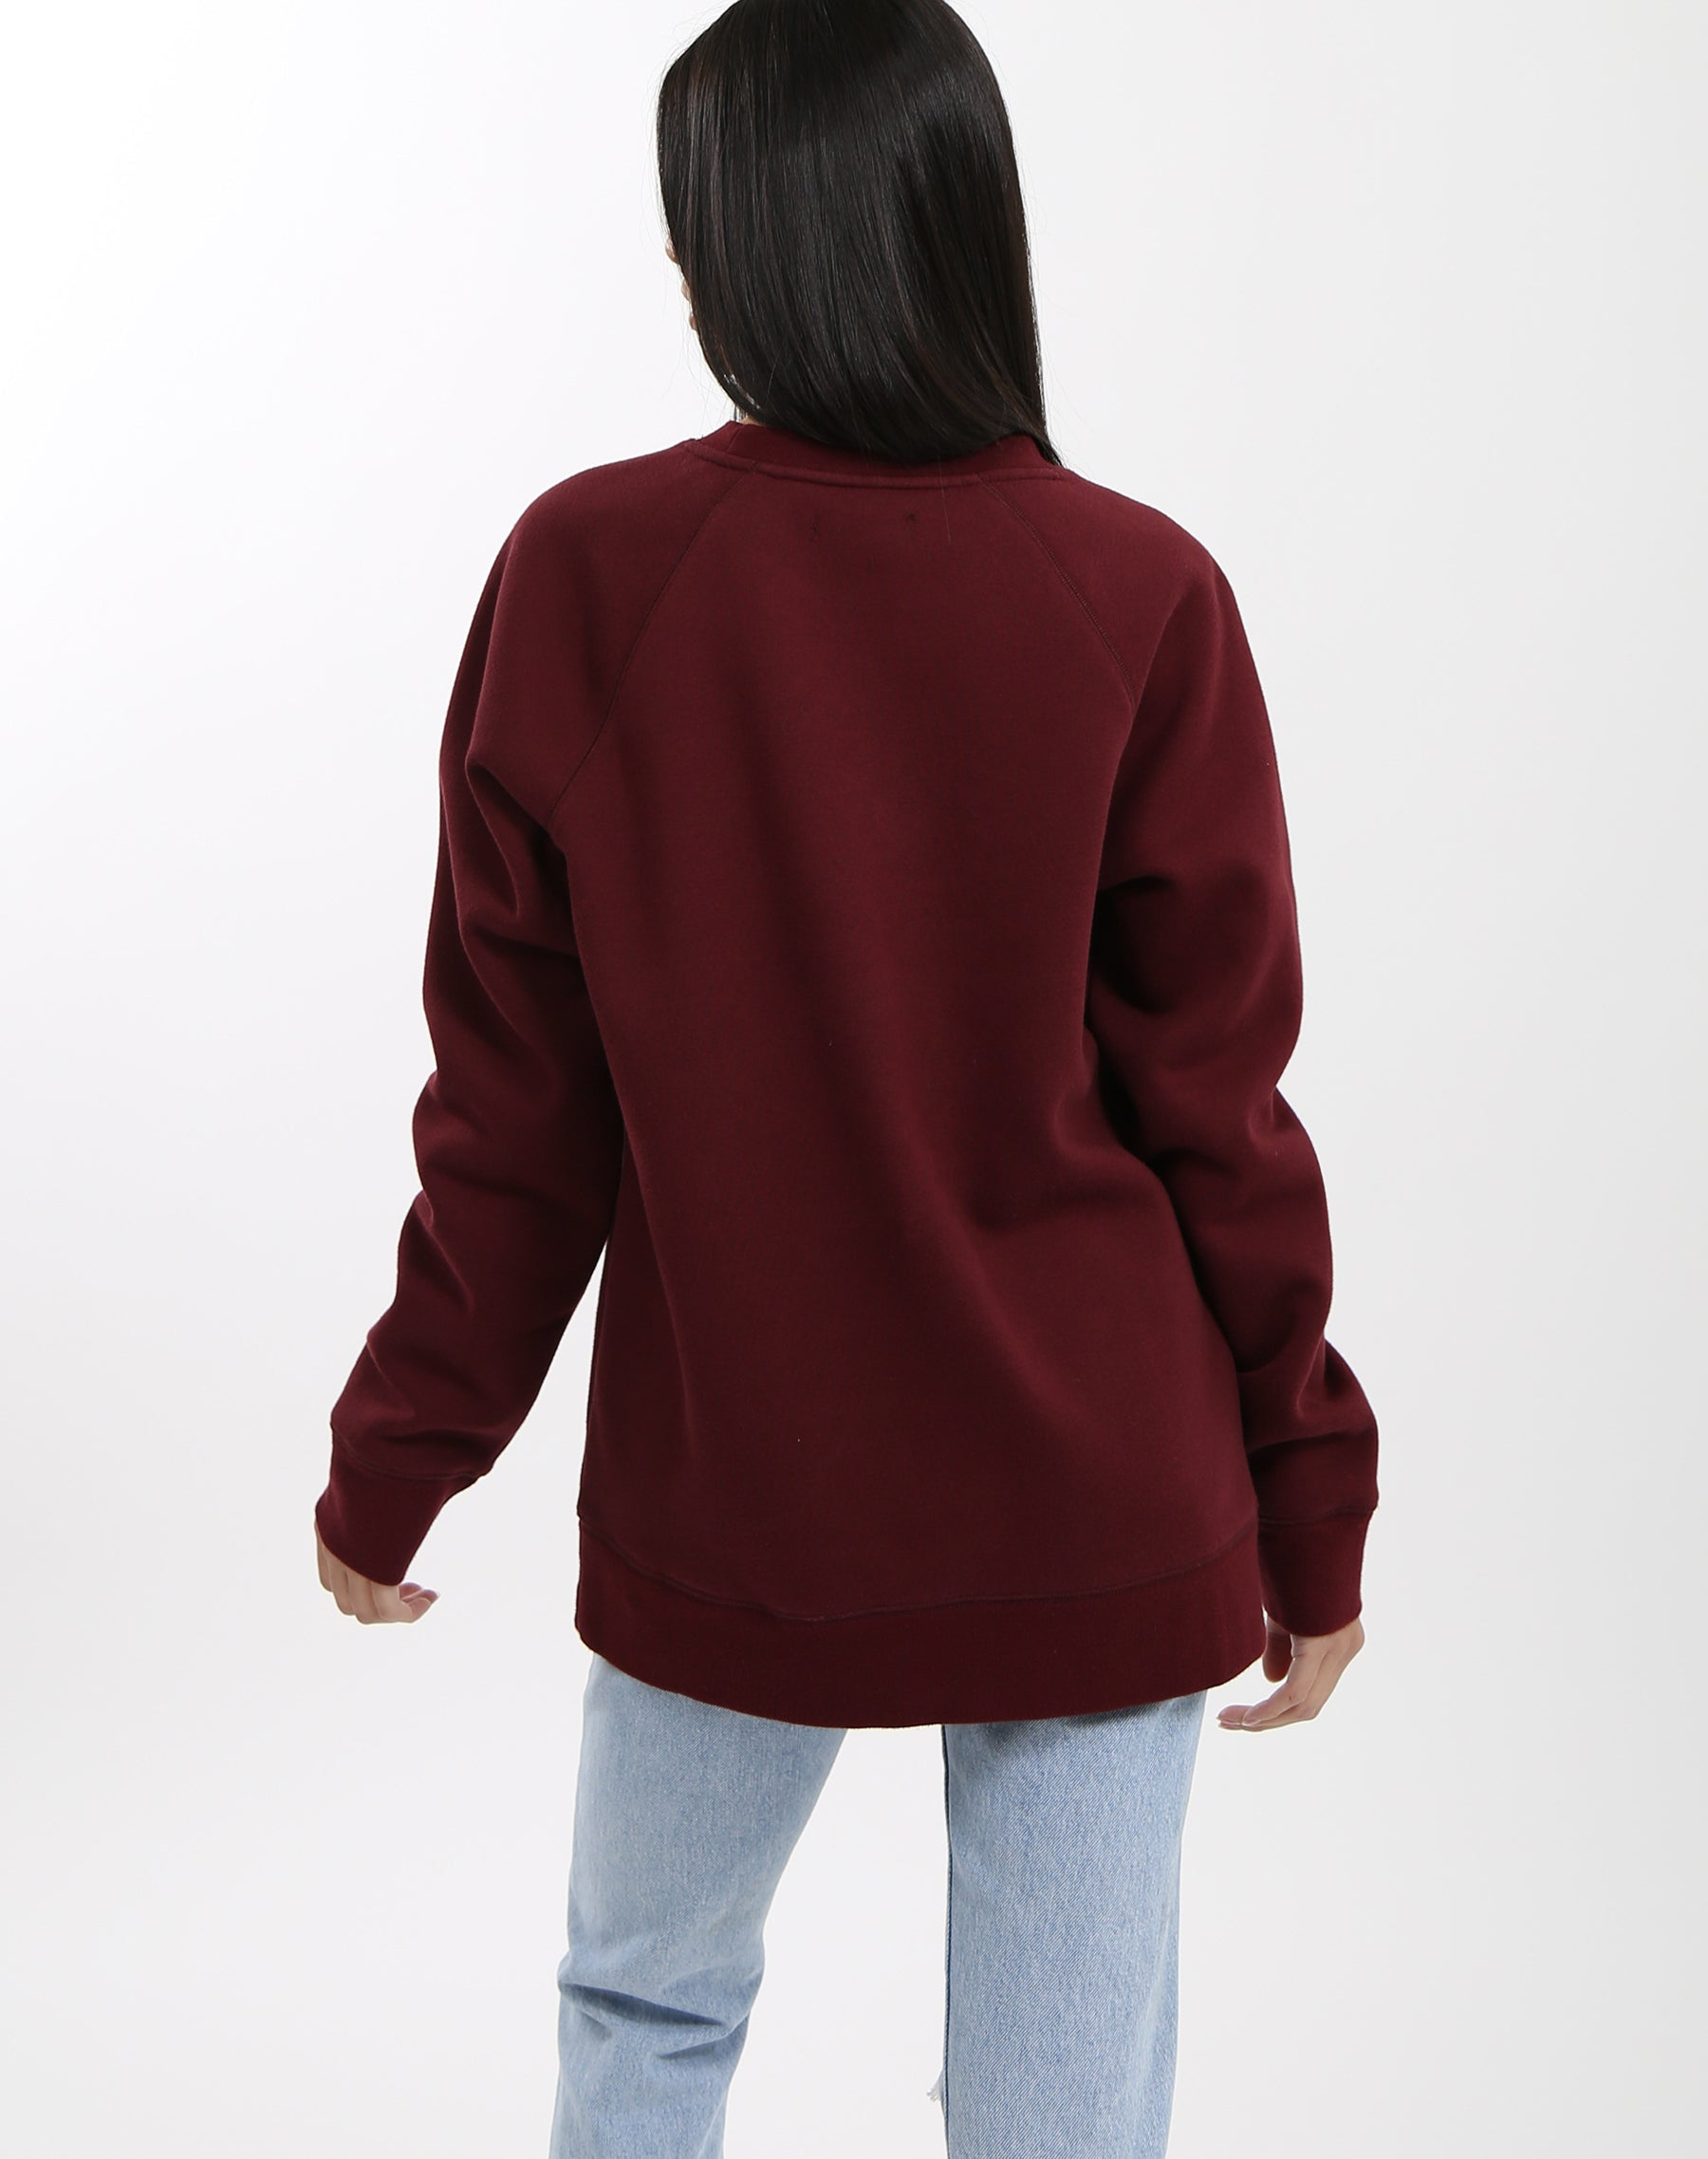 Photo of the back of the Blonde classic crew neck sweatshirt in burgundy by Brunette the Label.